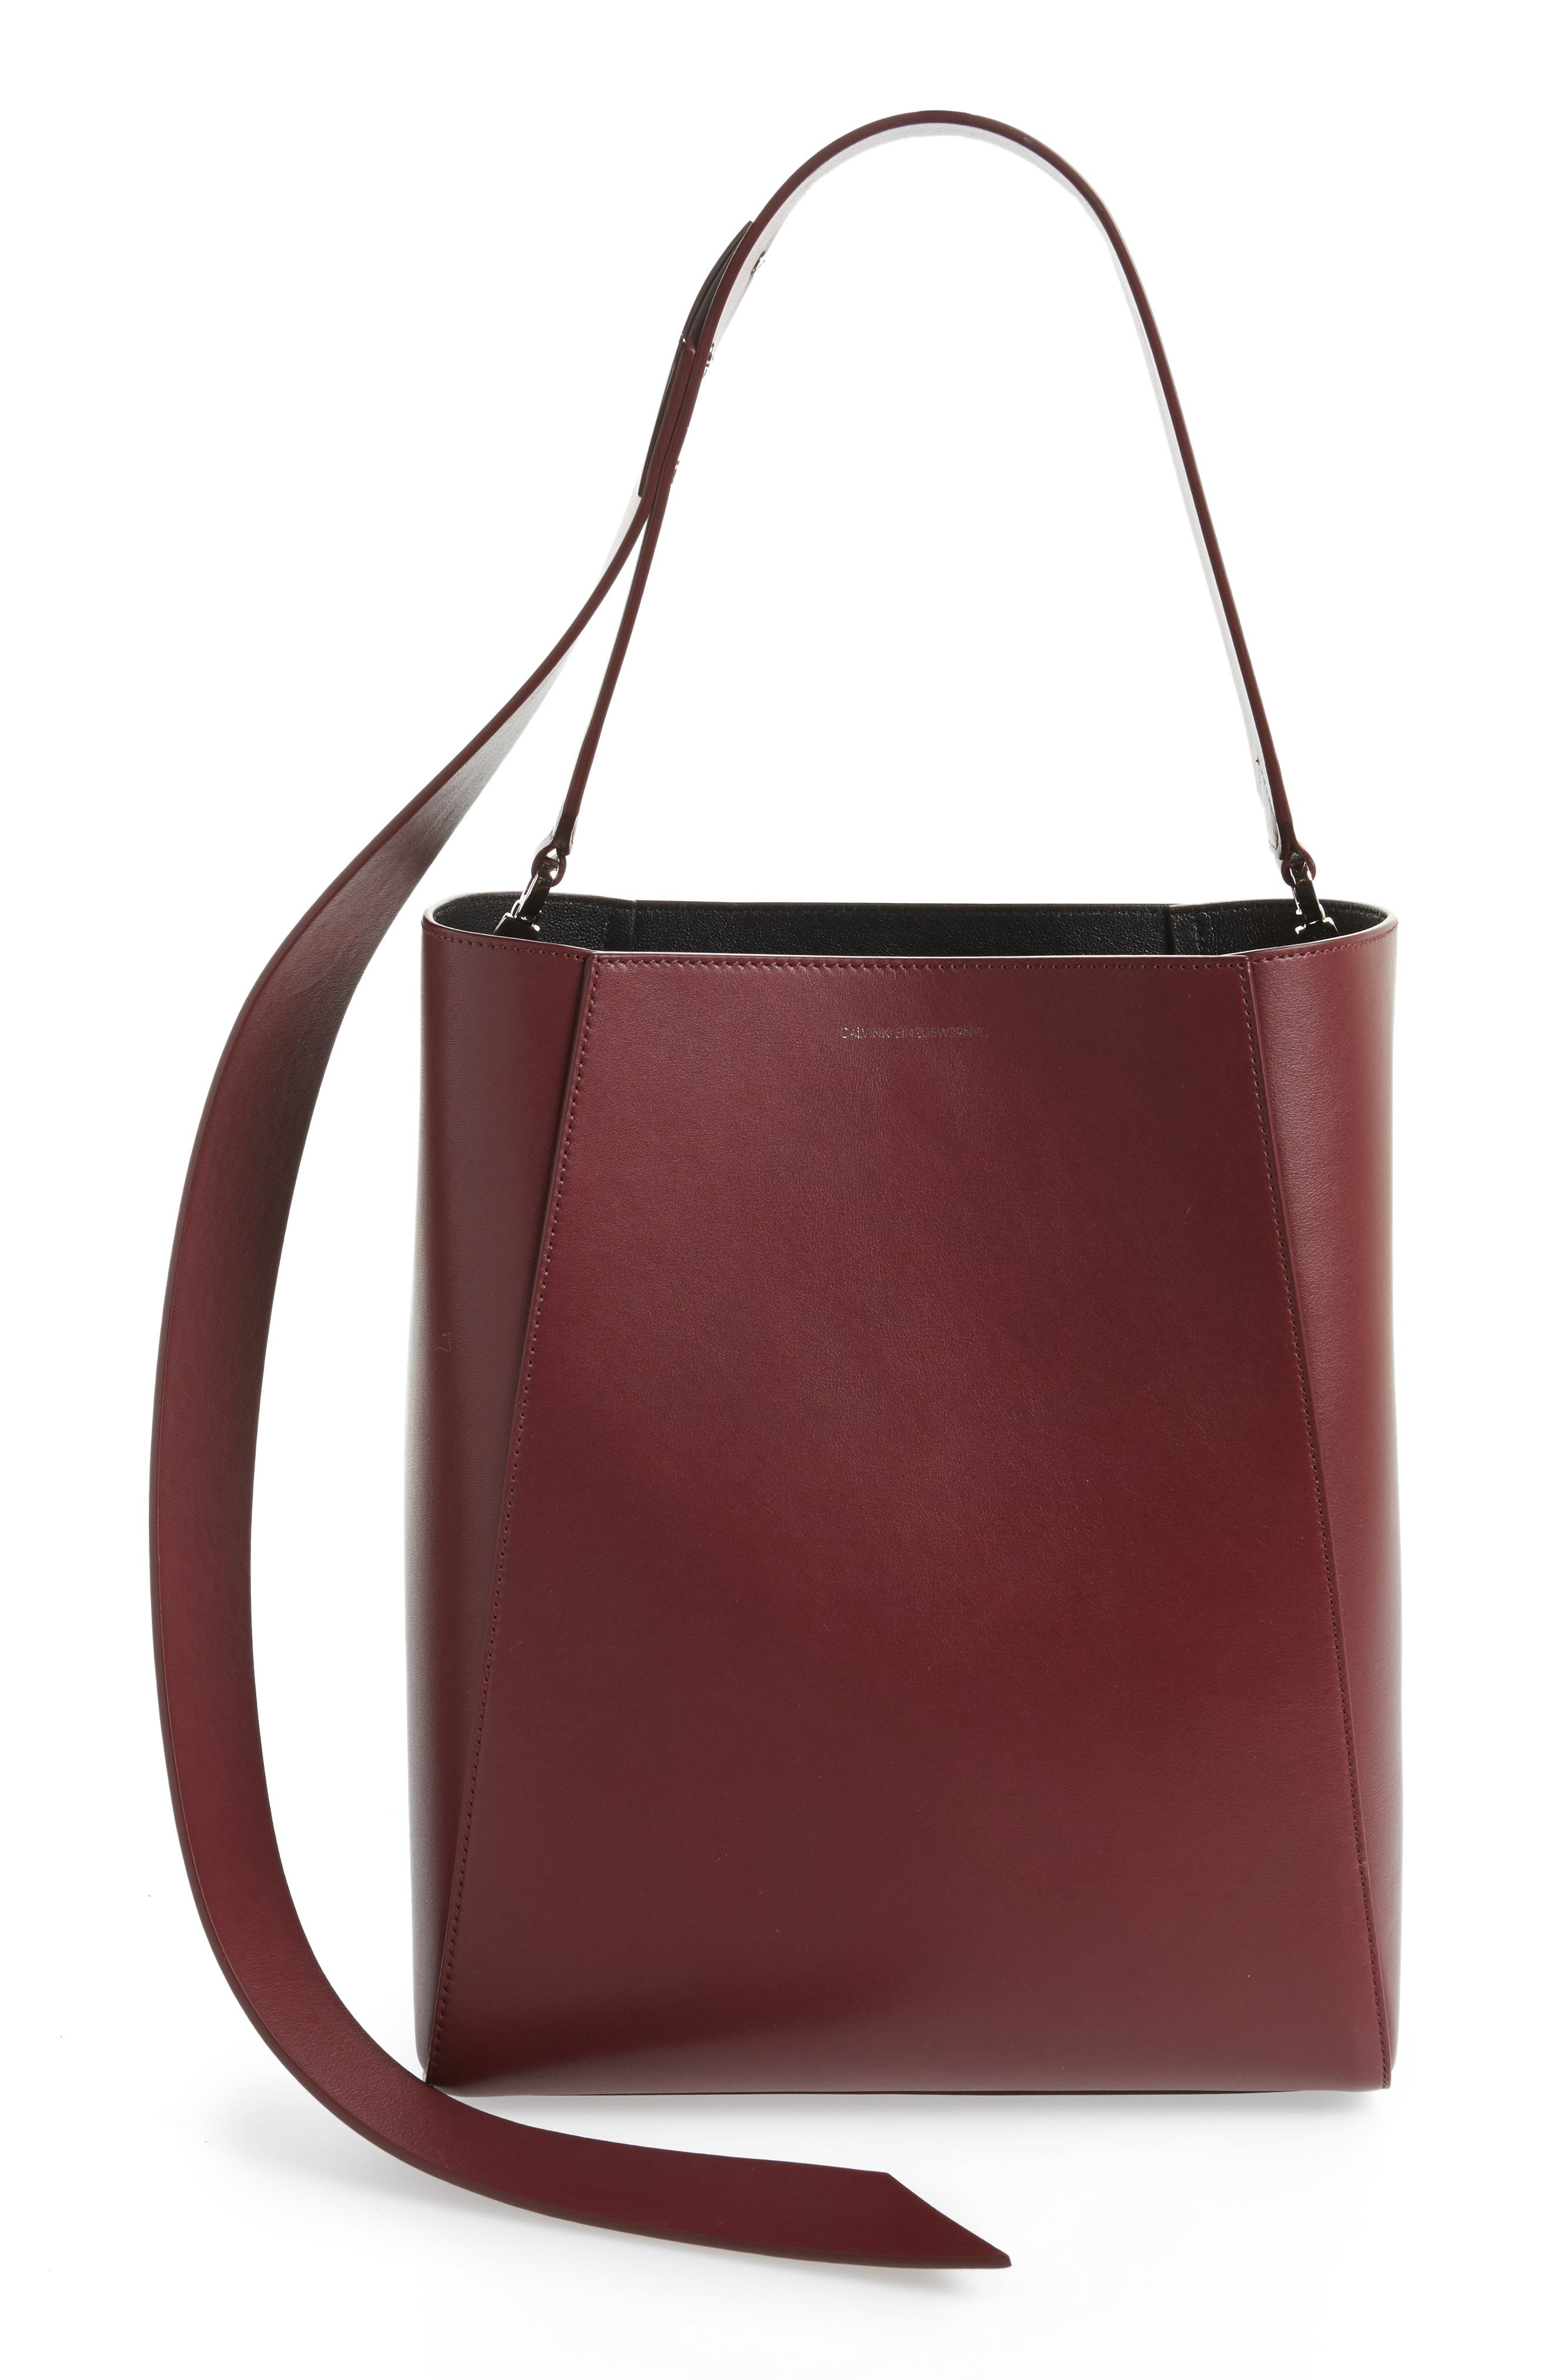 Alternate Image 1 Selected - CALVIN KLEIN 205W39NYC Medium Calfskin Leather Bucket Bag with Removable Pouch